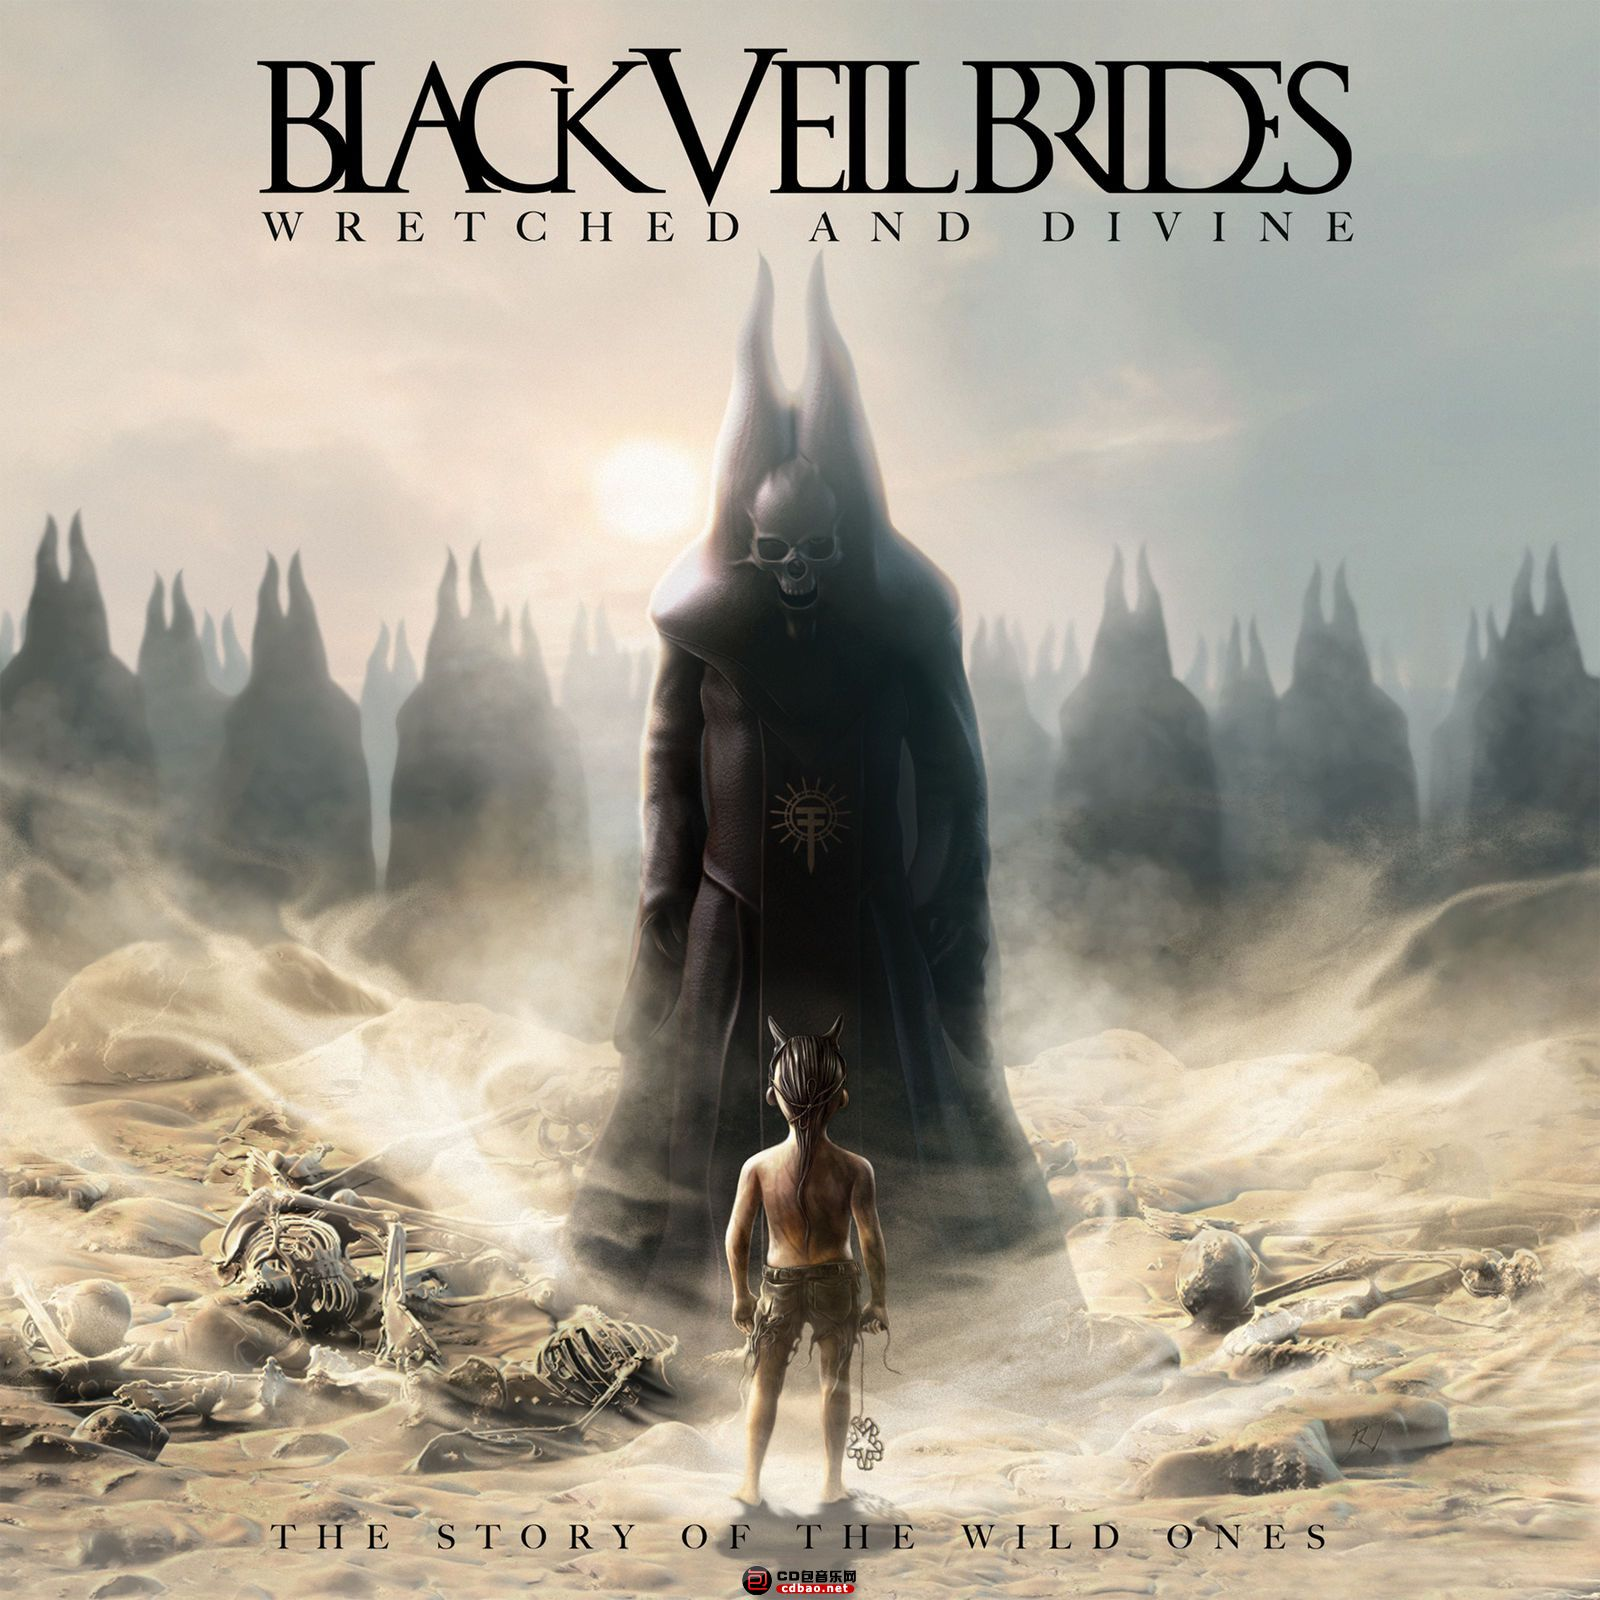 Black Veil Brides - Wretched And Divine- The Story Of The Wild Ones.jpg